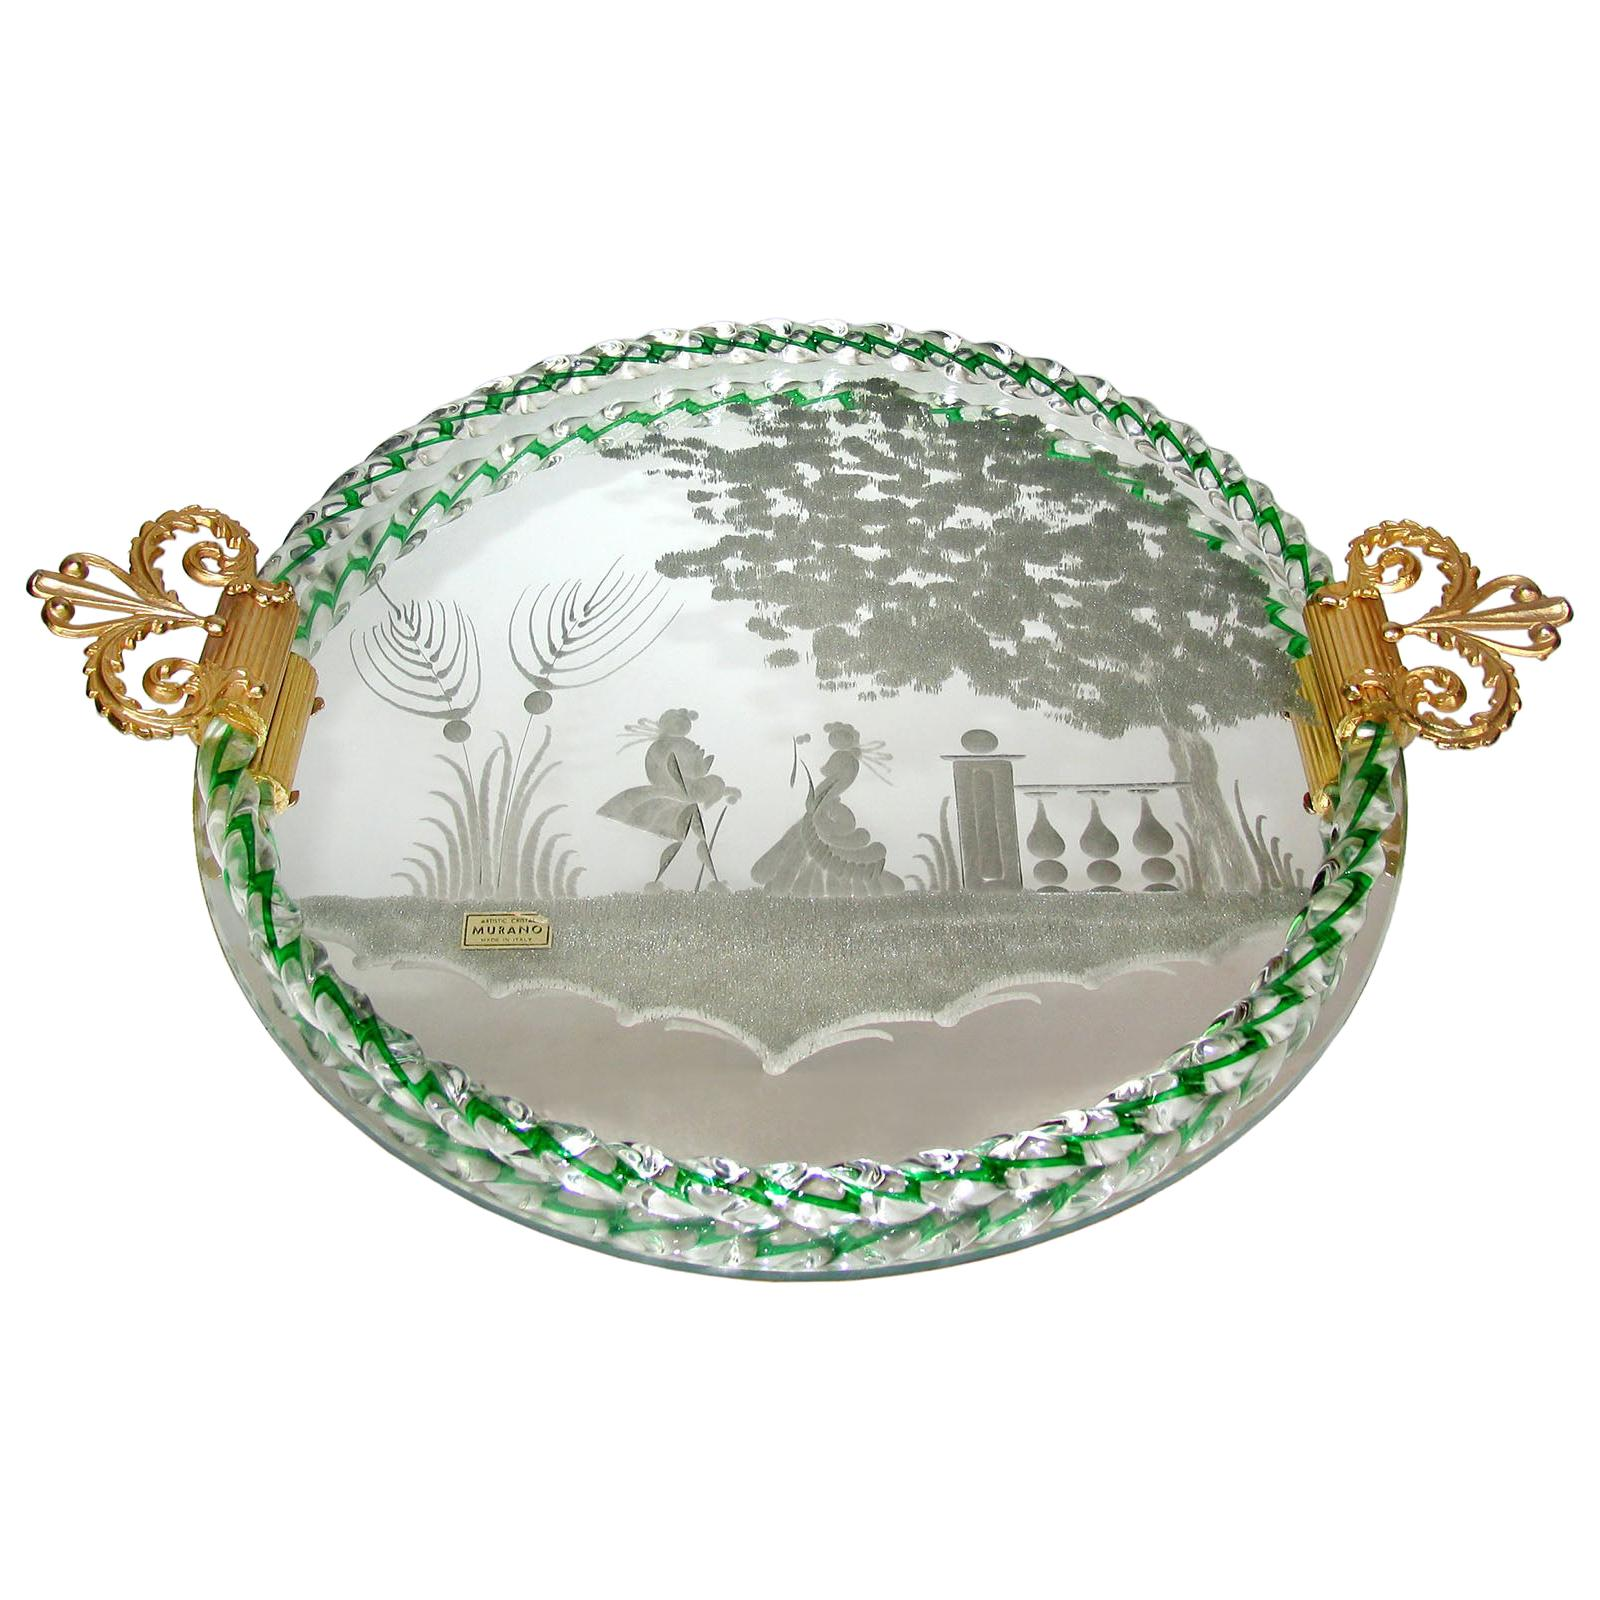 Etched Murano Glass Mirrored Tray with Bronze Handles